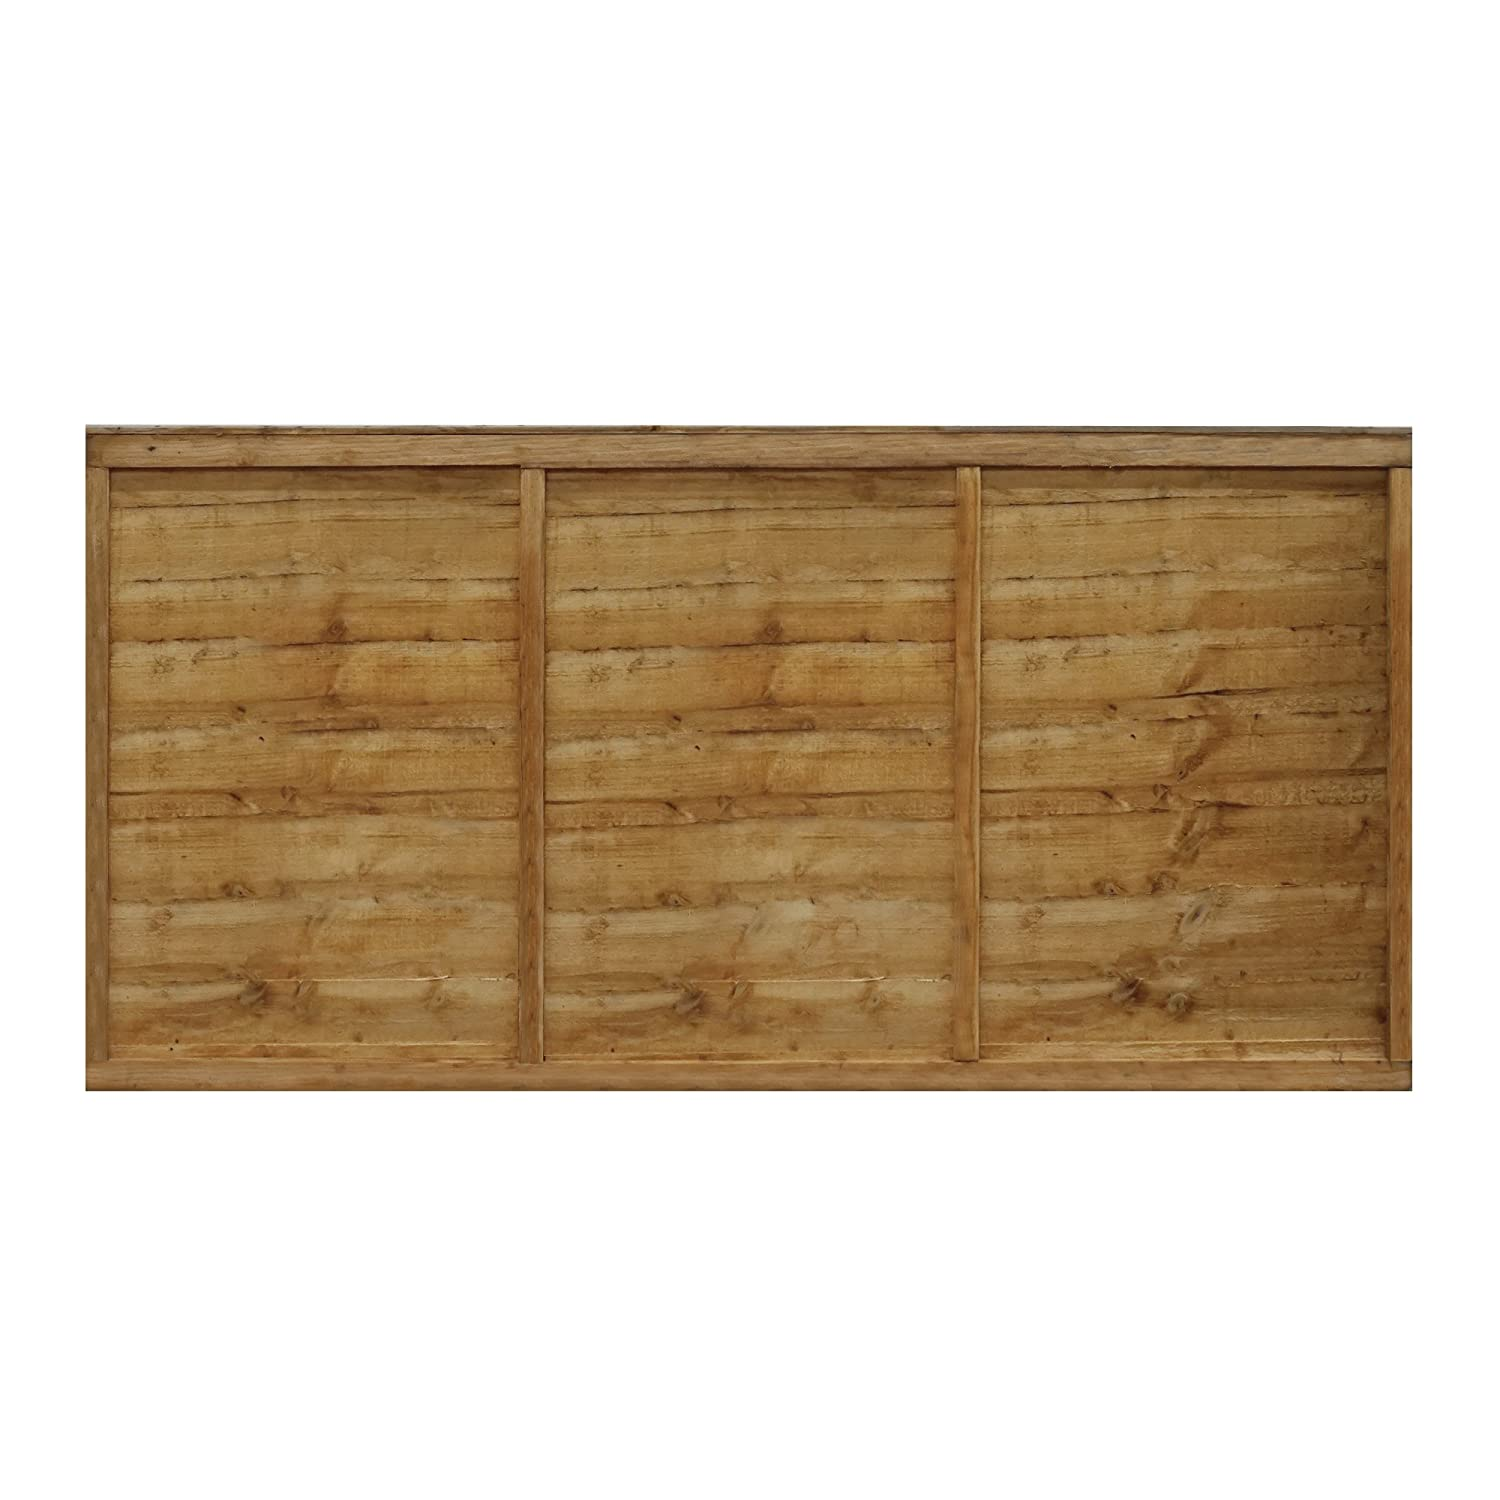 WALTONS EST. 1878 3x6 Wooden Fencing Panels, Horizontal Overlap Construction - Dip treated with 10 years guarantee (3 x 6 / 3ft x 6ft) 3-5 Day Delivery by Waltons